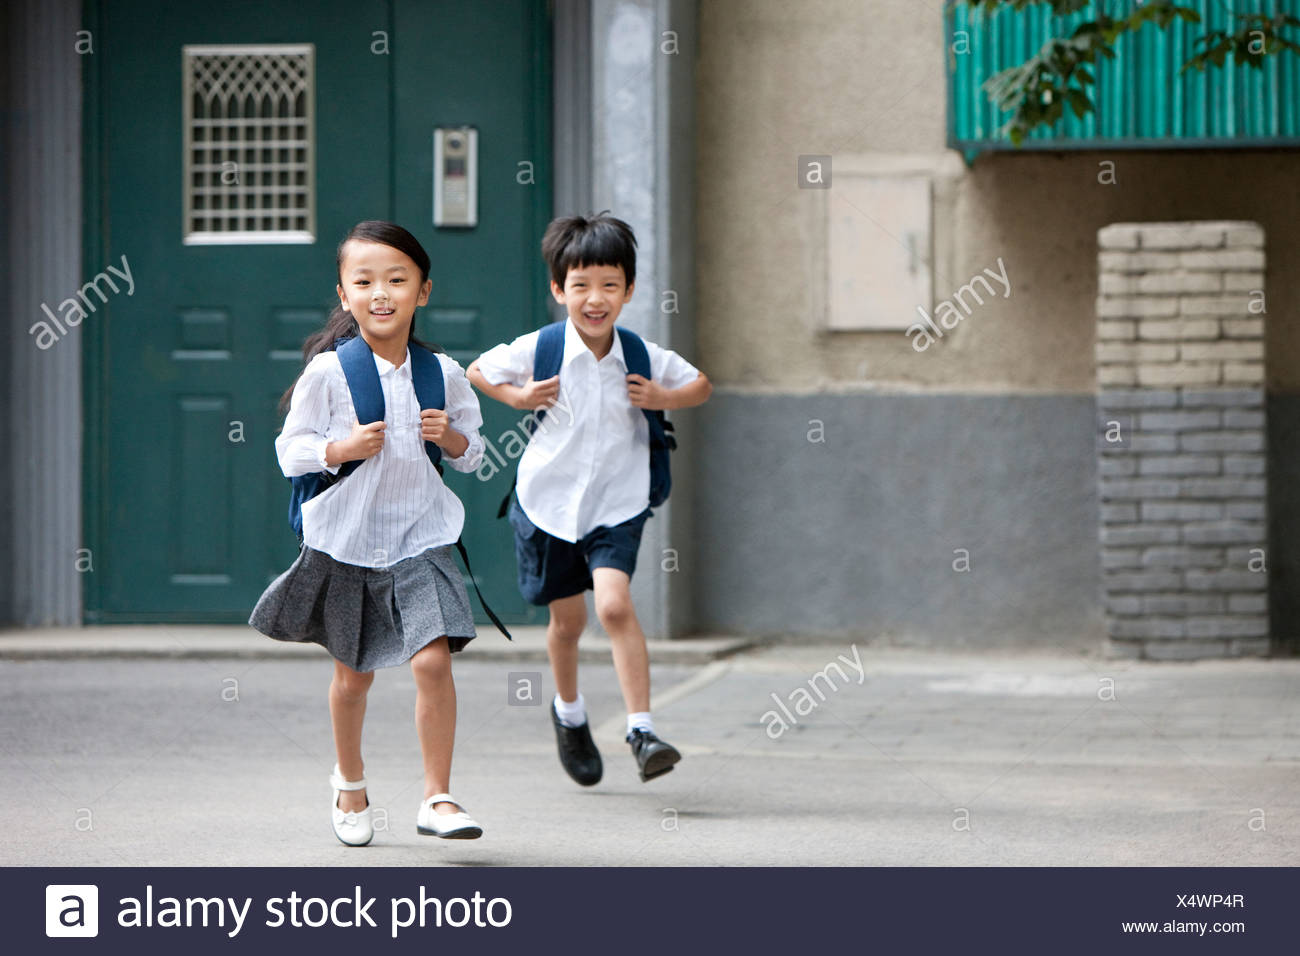 Children running to school - Stock Image